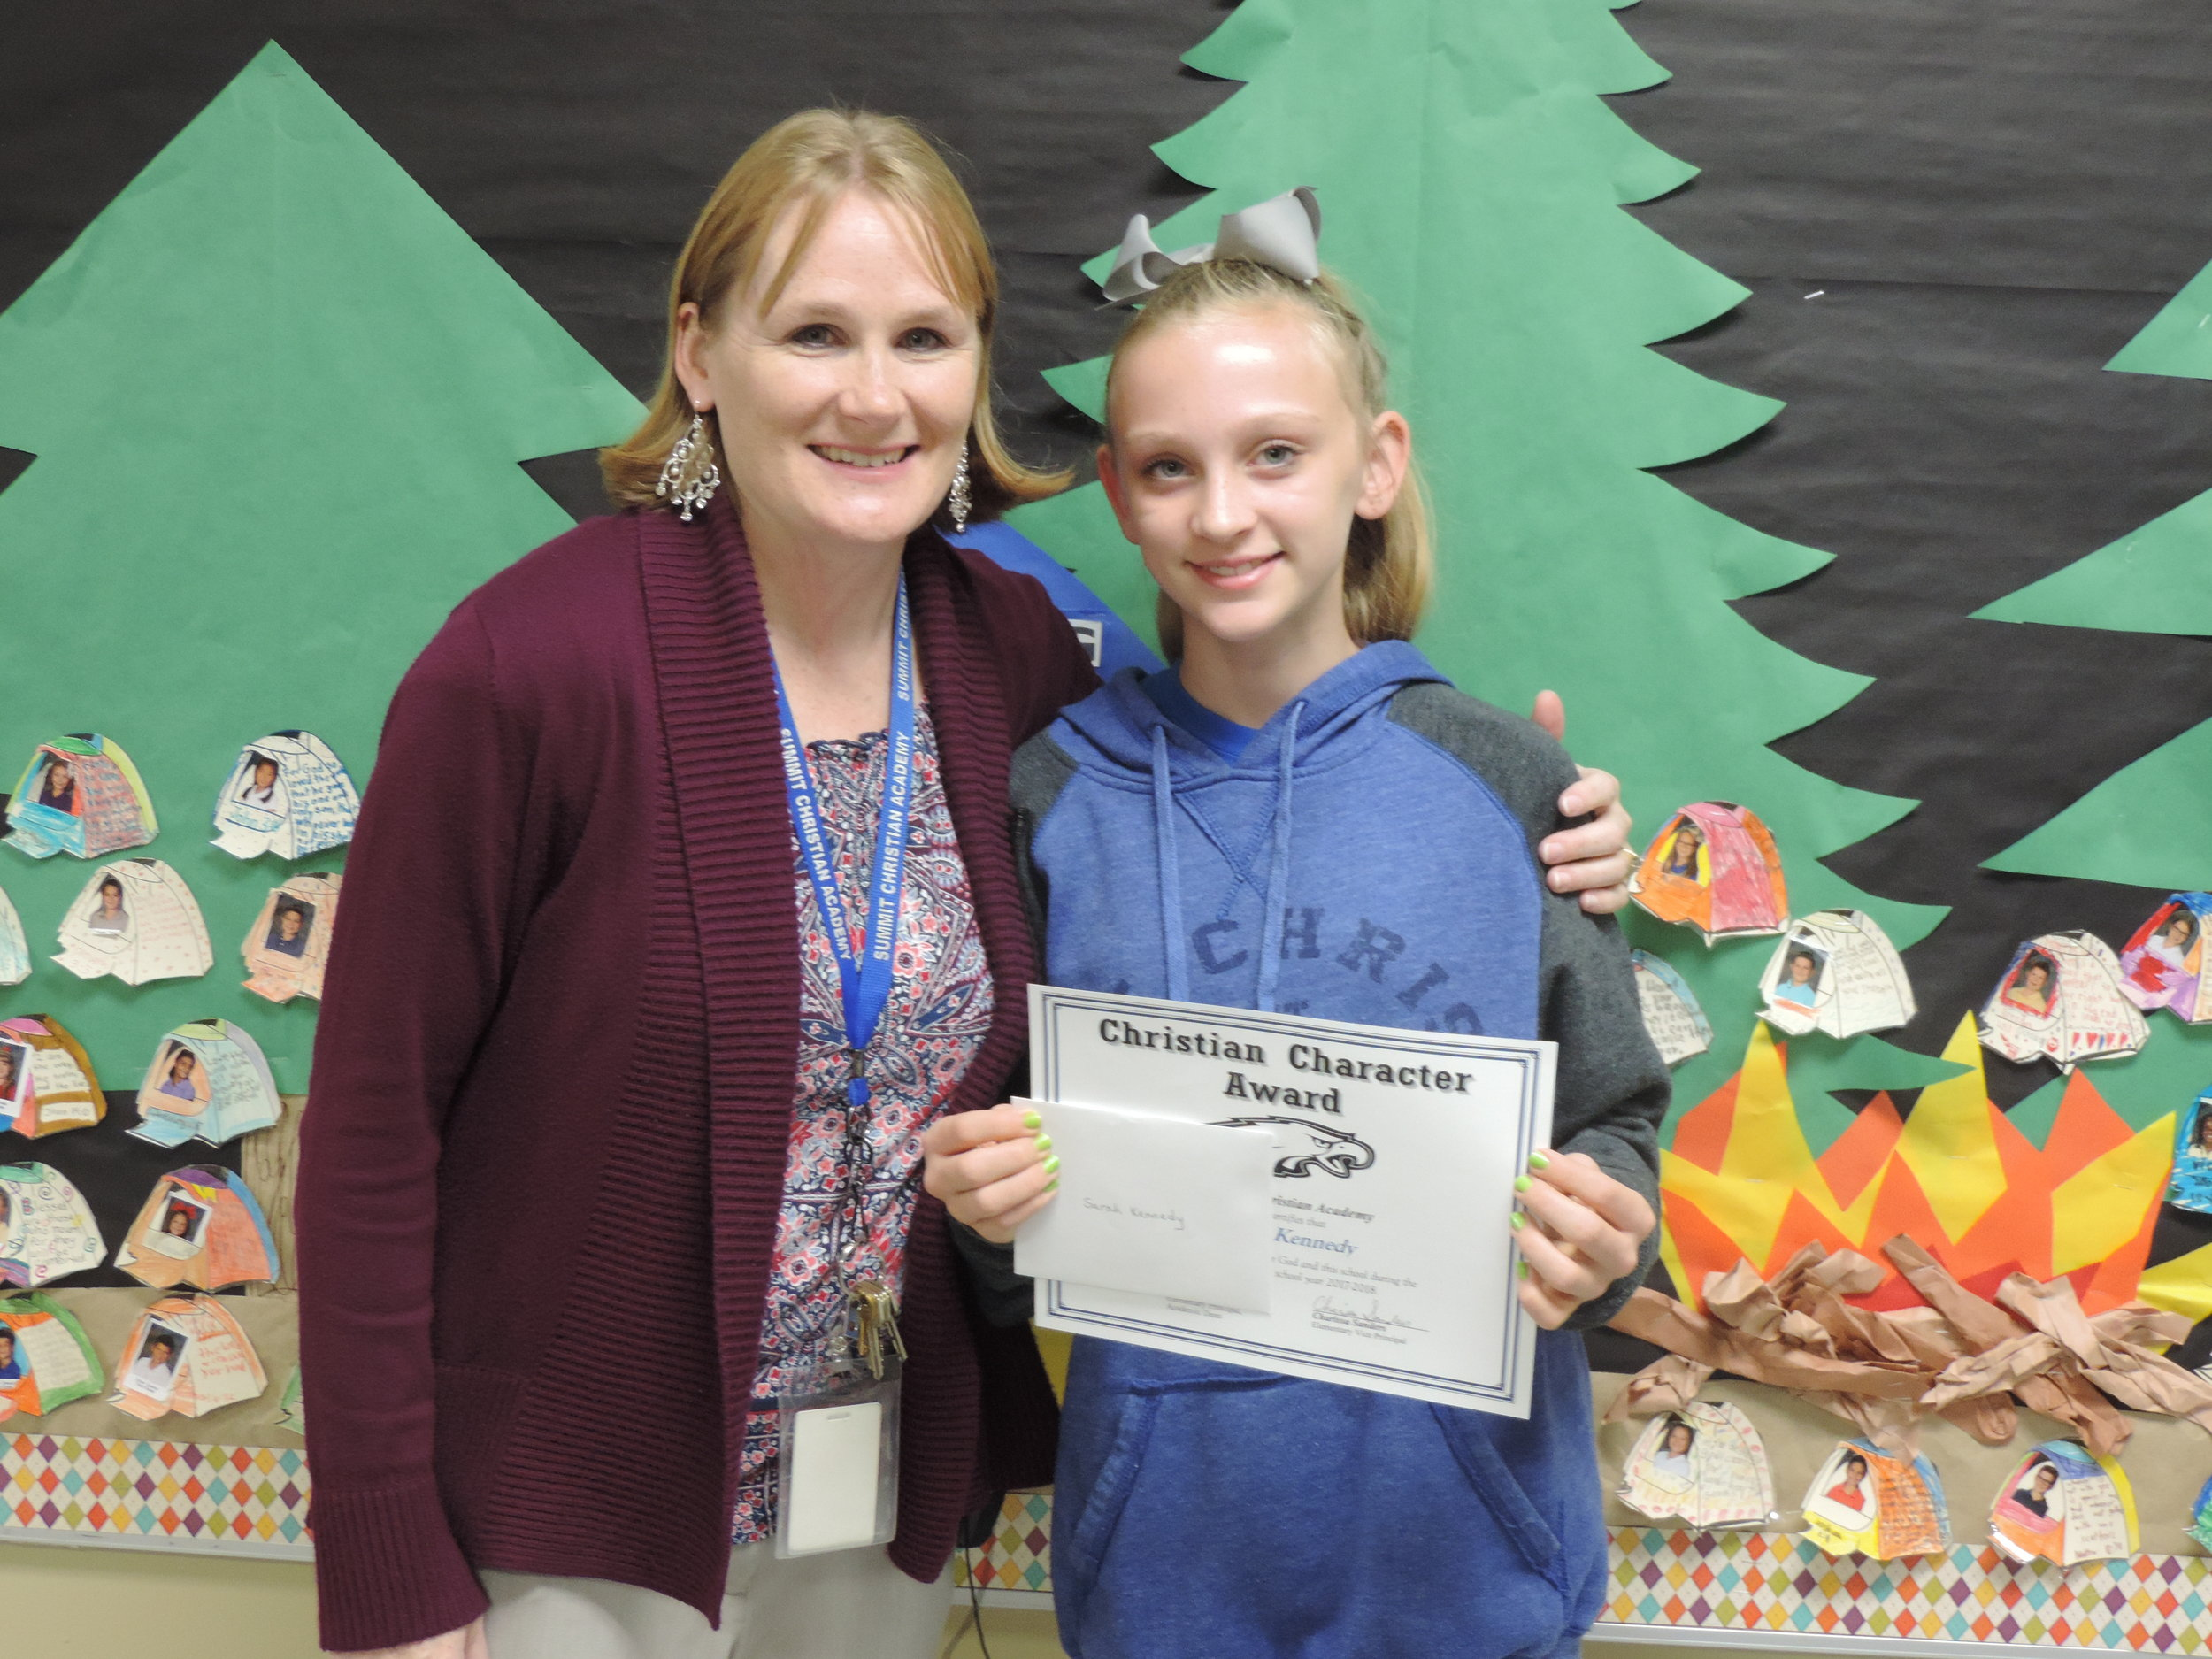 SCA sixth grade student Sarah Kennedy, pictured with SCA Elementary Vice-Principal Charissa Sanders, received an elementary Christian Character Award for first quarter.